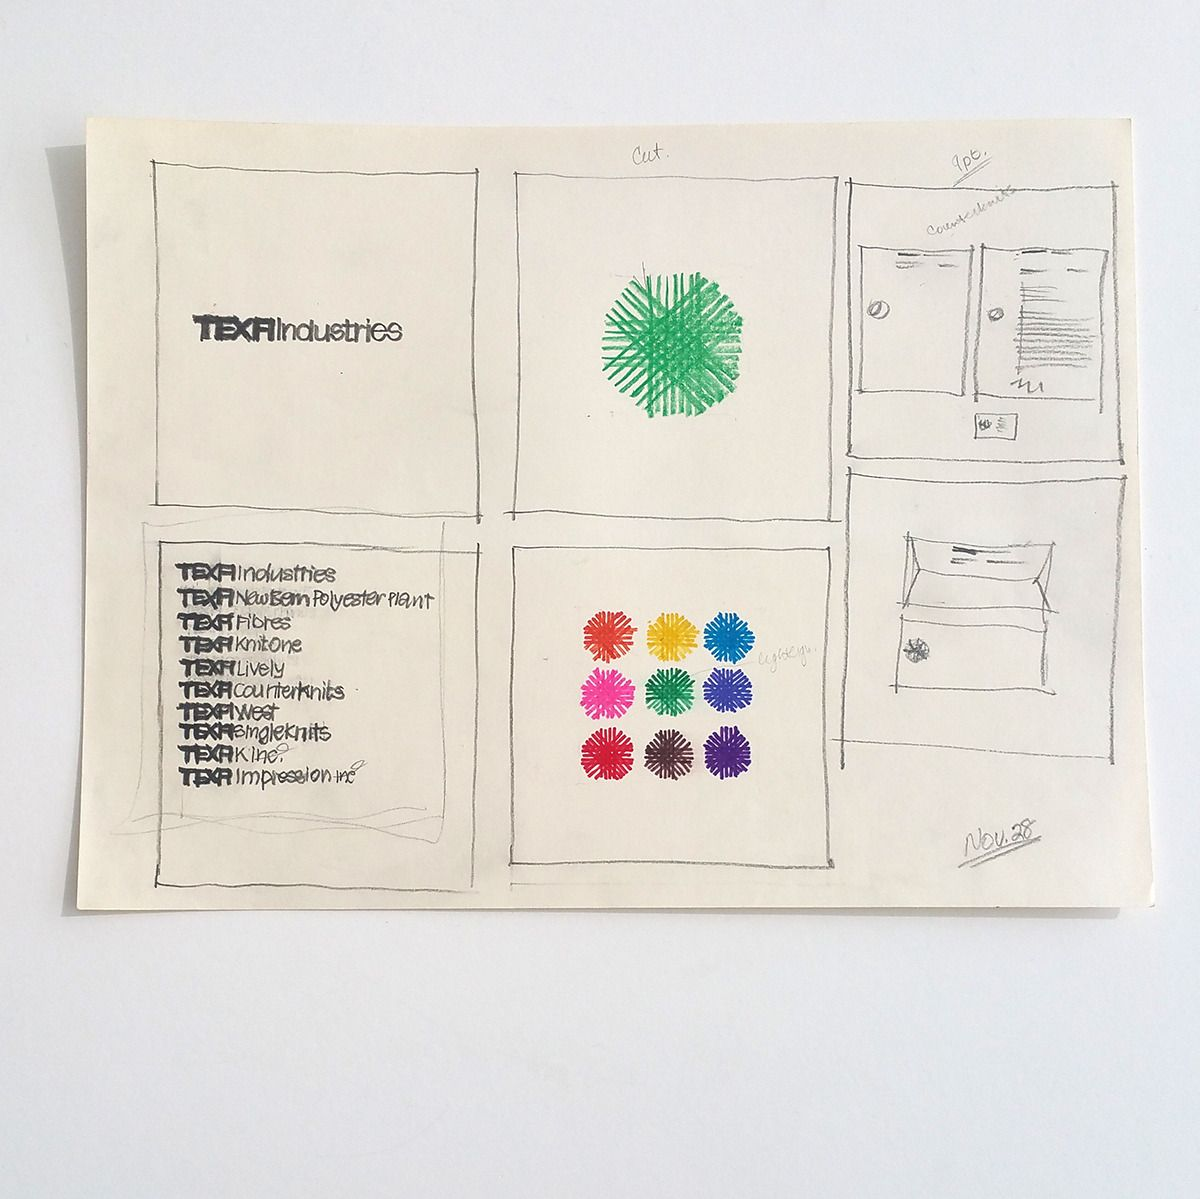 Making of a manual Every Monday we share an excerpt from a graphic  standards manual from the archives. This past Monday we shared the Texfi  (textile ...